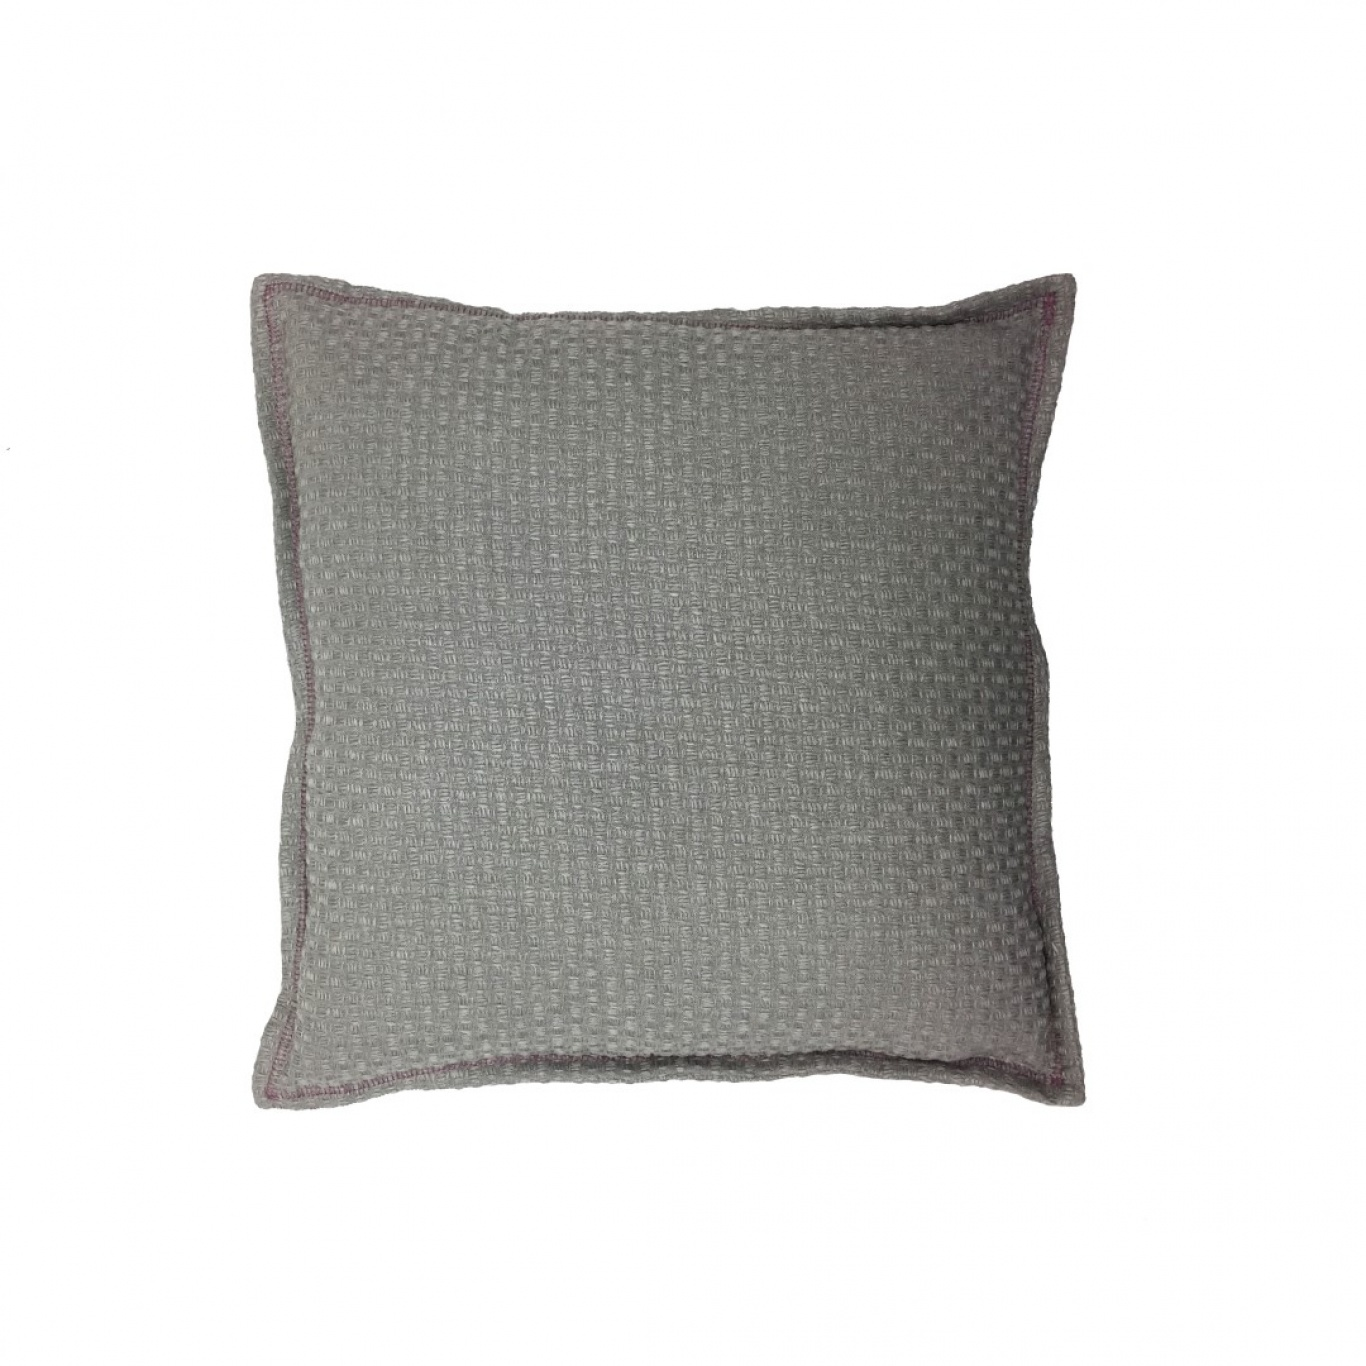 Image of Voyage Nessa Silver Cushion